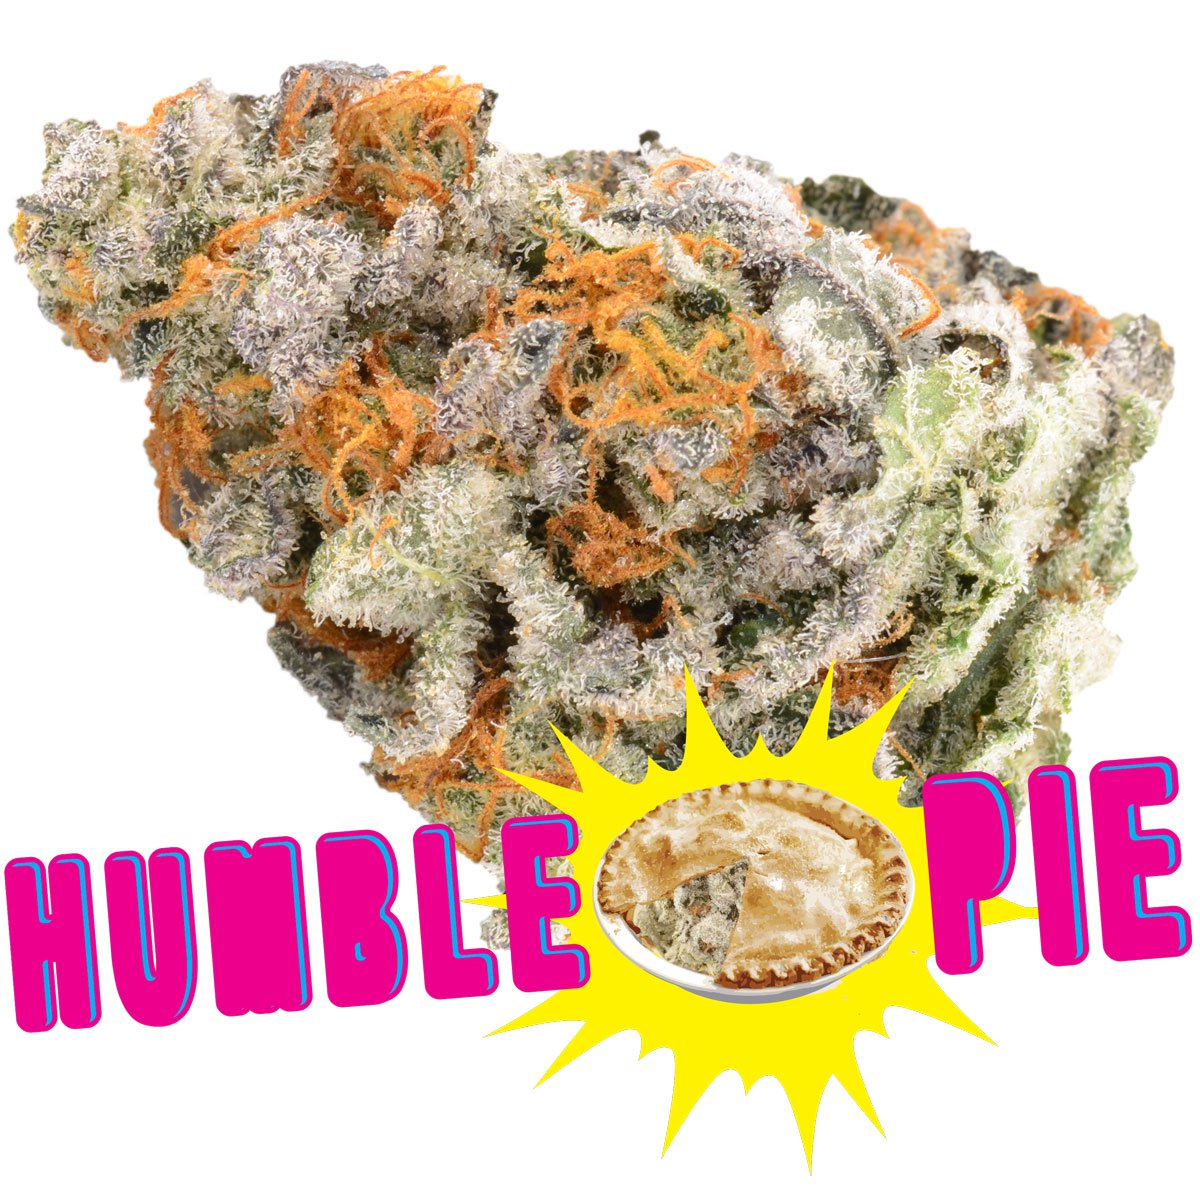 Humble Pie by BC Bud Store - Image © 2018 BC Bud Store. All Rights Reserved.